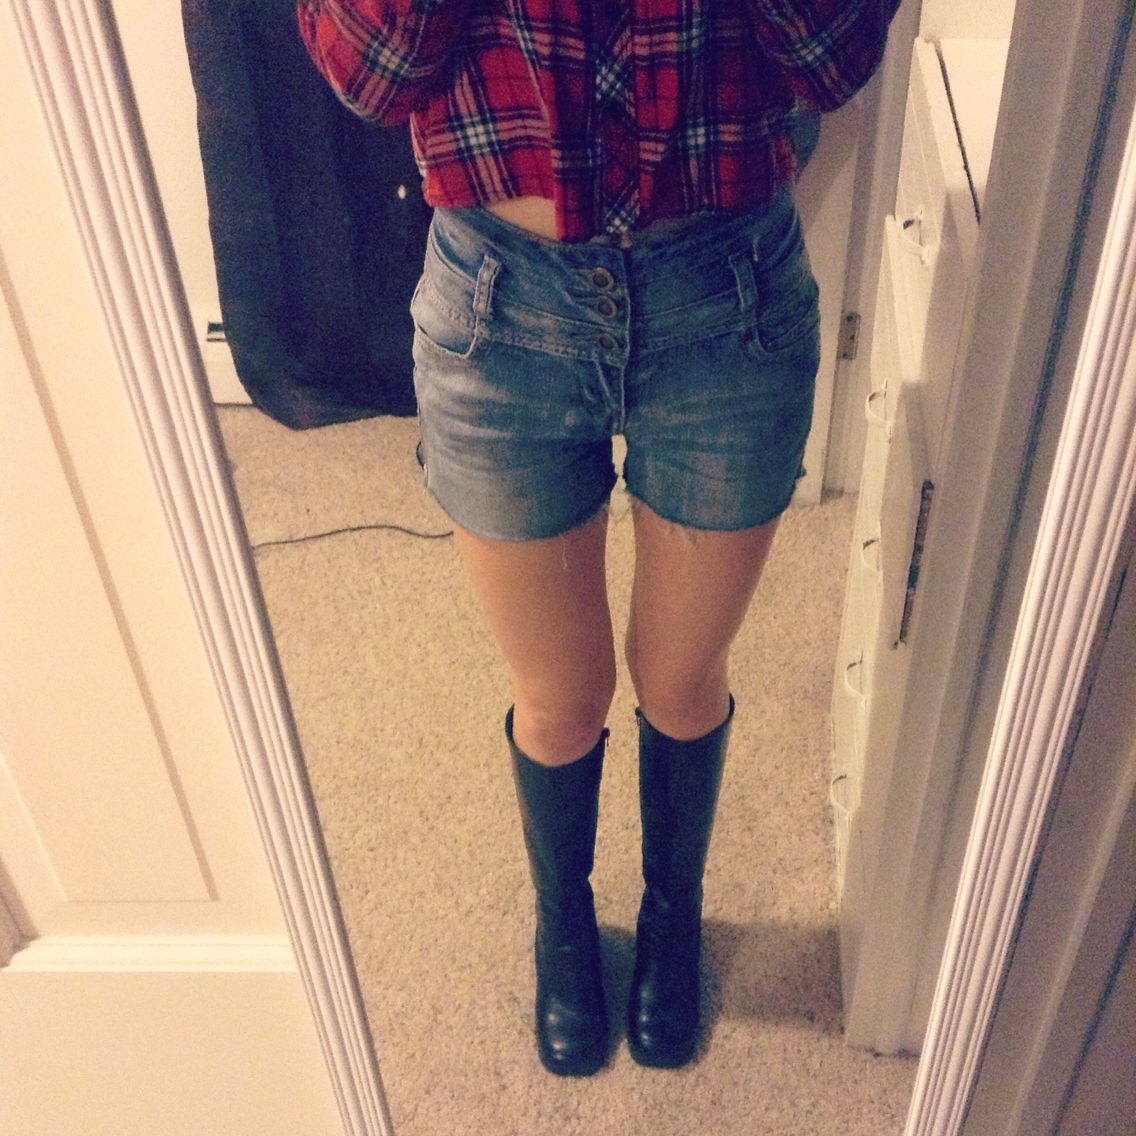 Old high wasted jeans cut into shorts Crop top flannel found at HuM